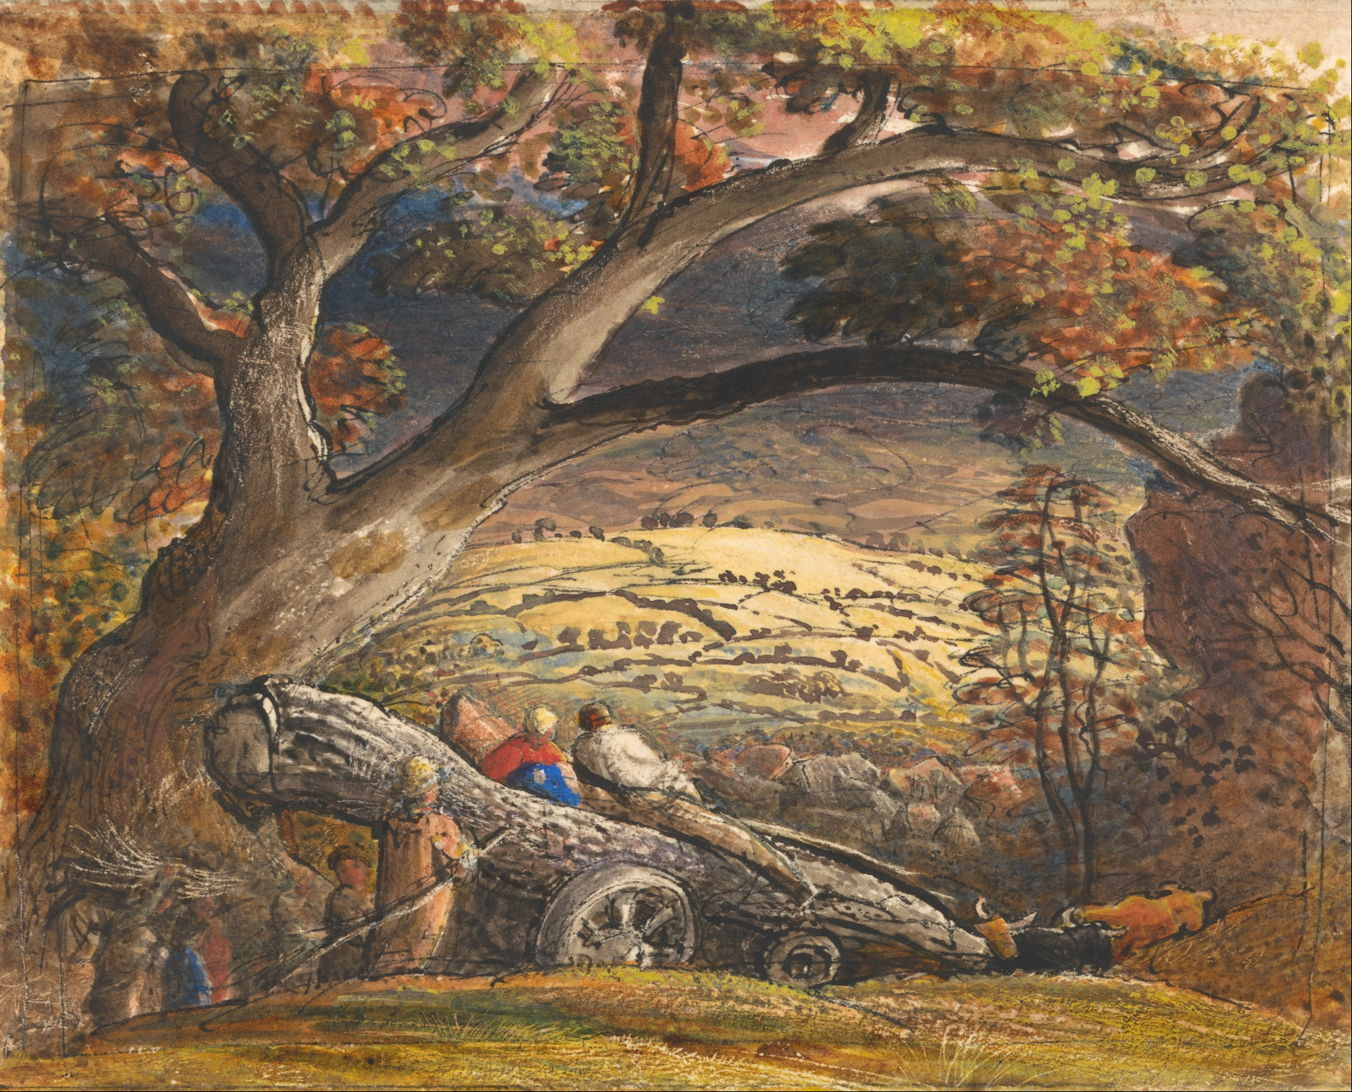 Landscapes Of The Ancients Samuel Palmer Early Visions